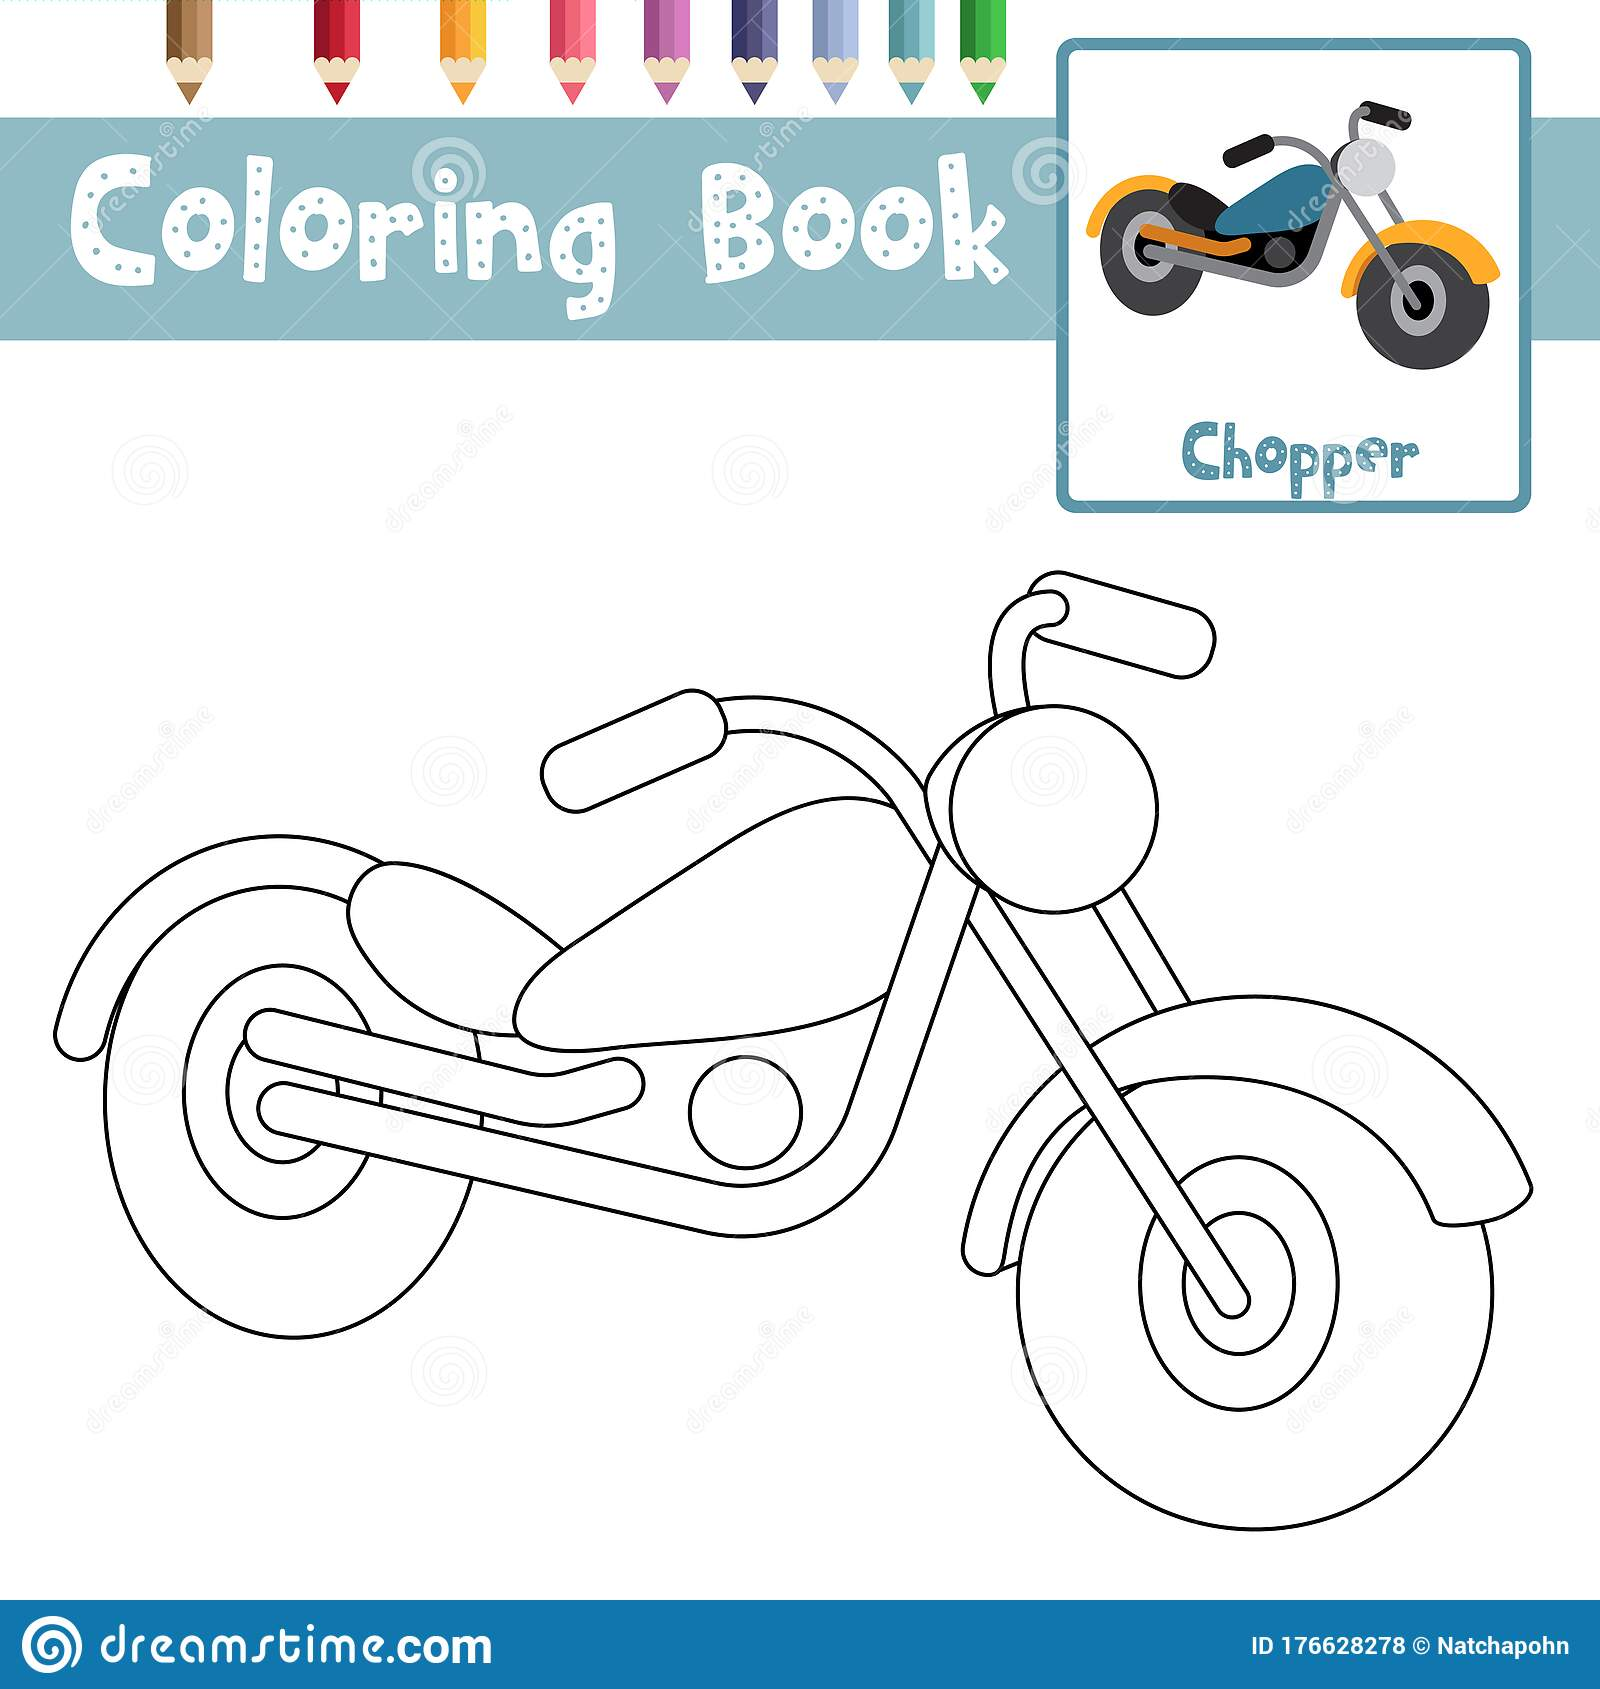 Coloring Page Chopper Cartoon Character Perspective View